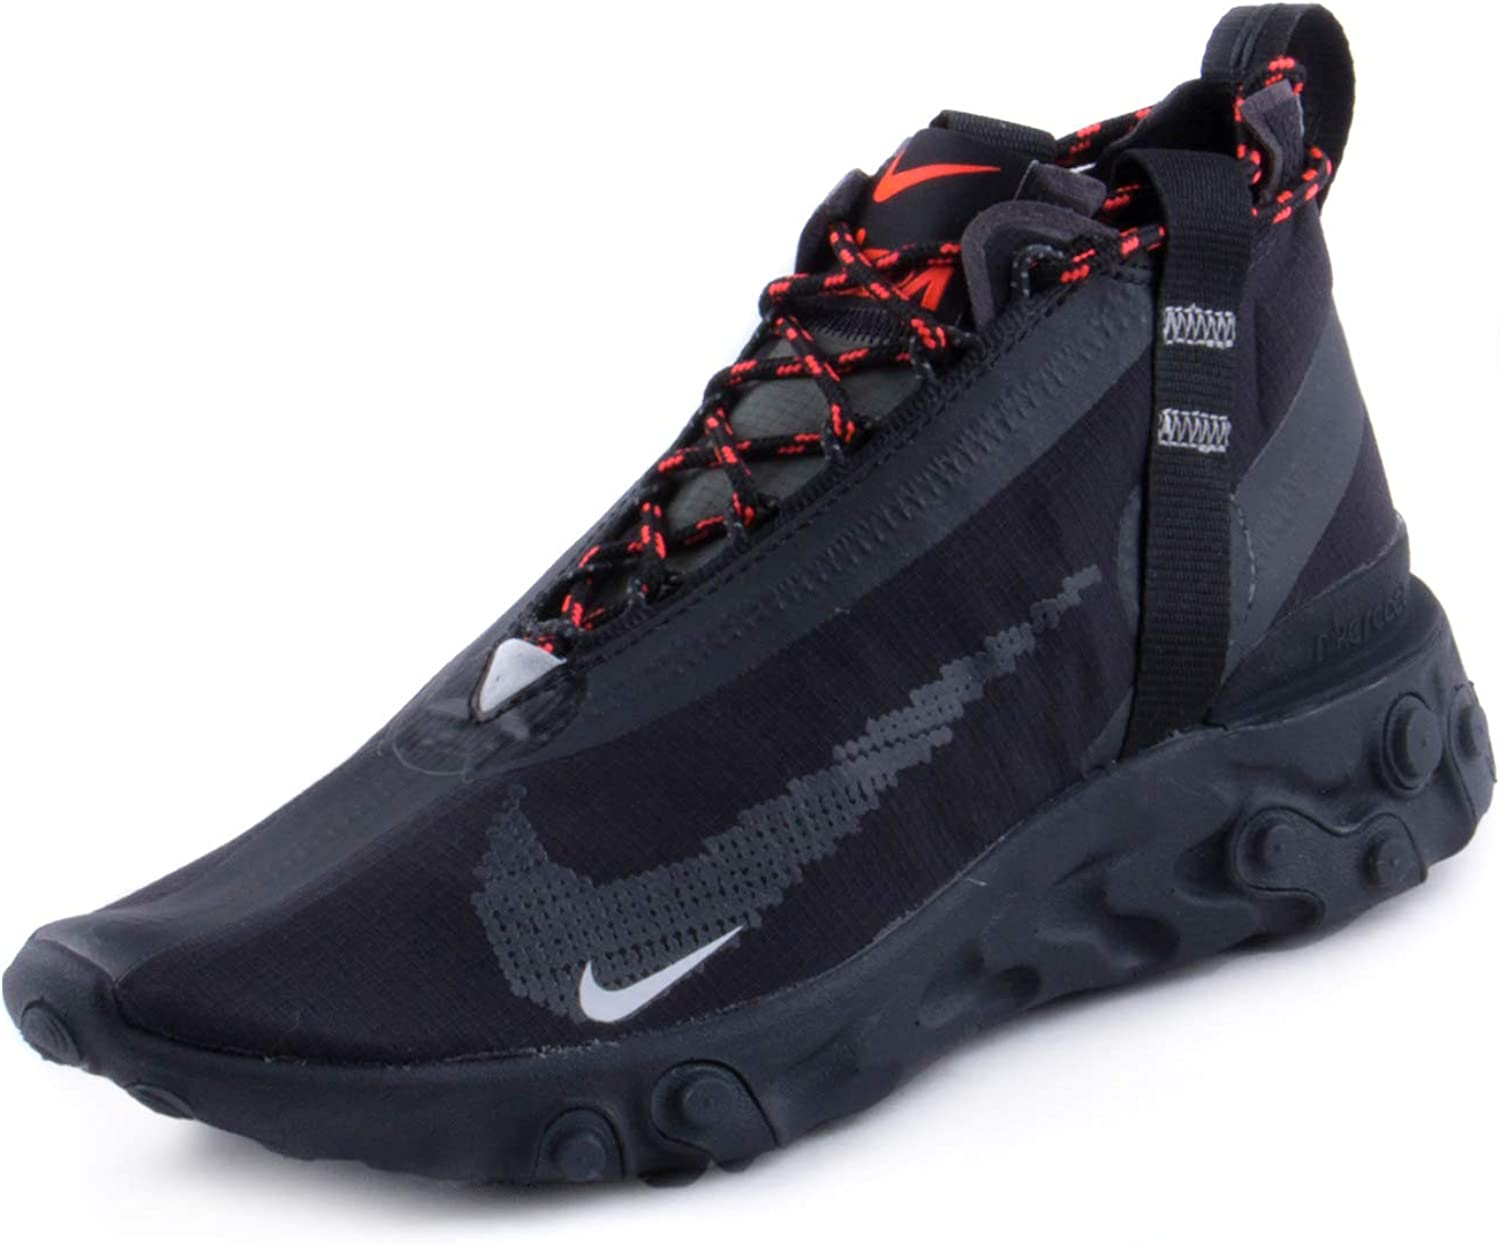 lista Pakistán modelo  Amazon.com | Nike Mens React Runner Mid WR ISPA Black/White-Anthracite  Synthetic | Road Running